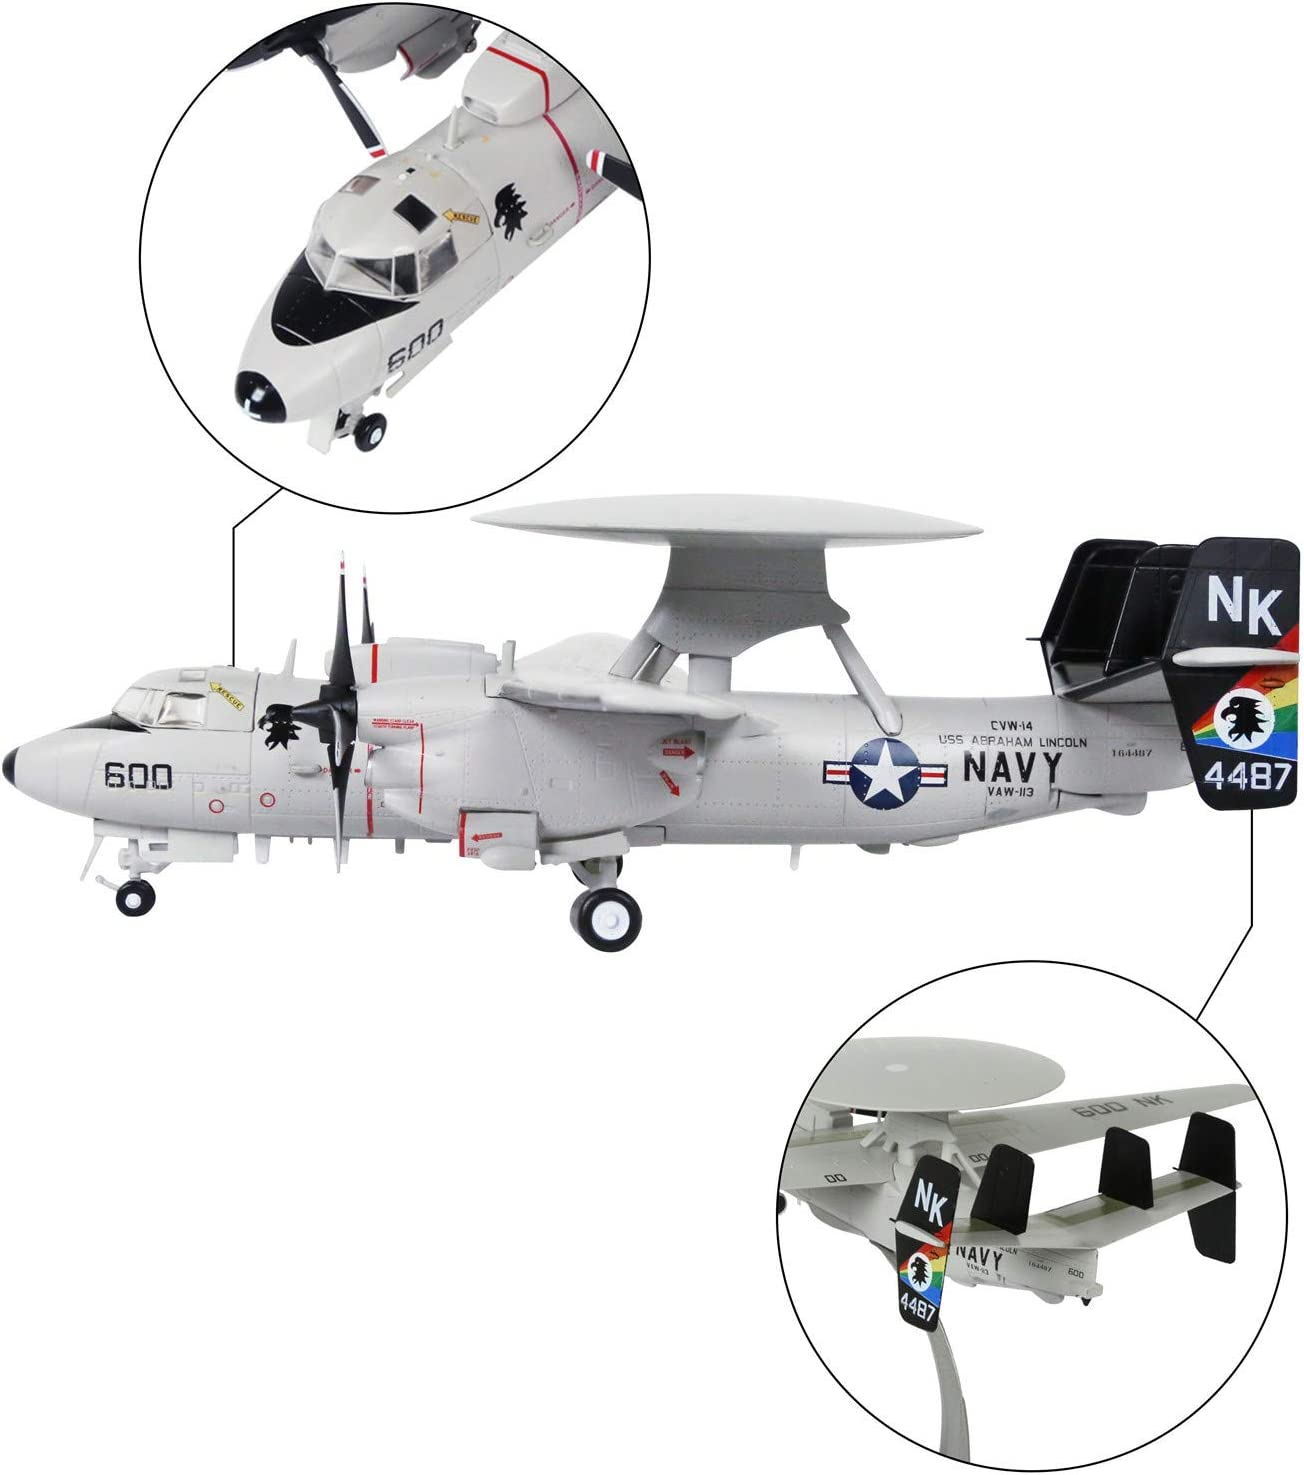 HANGHANG 1//72 Scale American E-2C Hawkeye Airborne Early Warning Metal Fighter Military Model Fairchild Republic Diecast Plane Model for Commemorate Collection